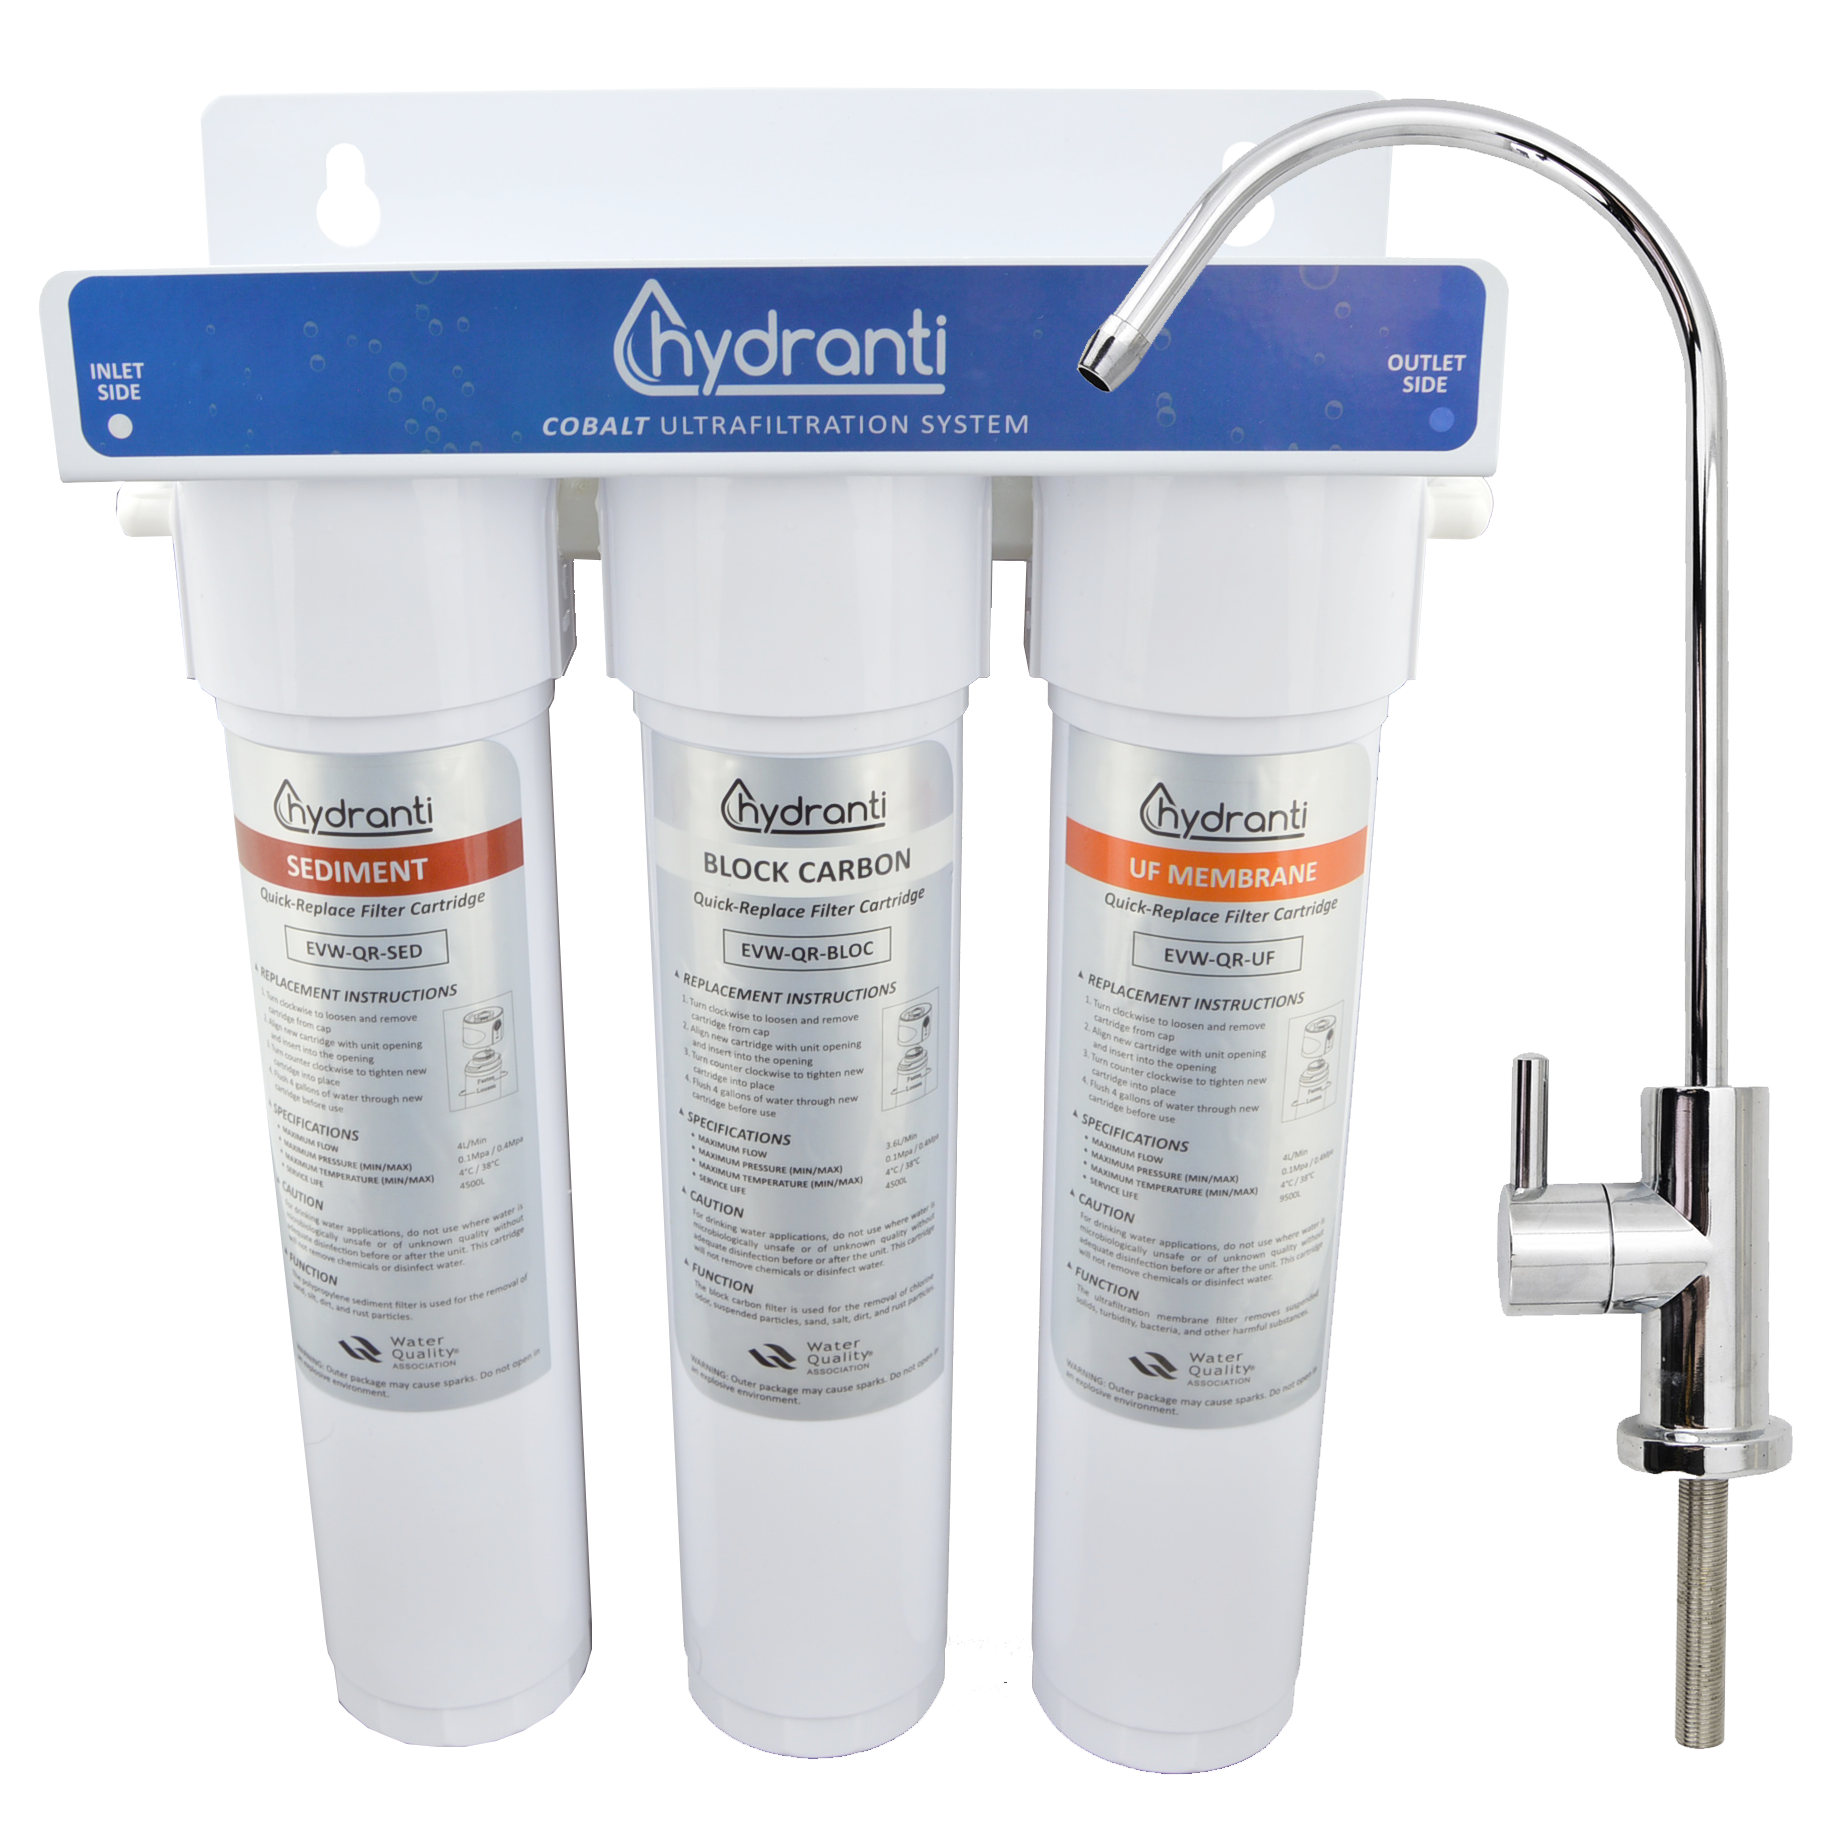 COBALT 3-Stage UF Filtration System - Our premiere water filtration system. Easy to install and use, plus incredibly effective!